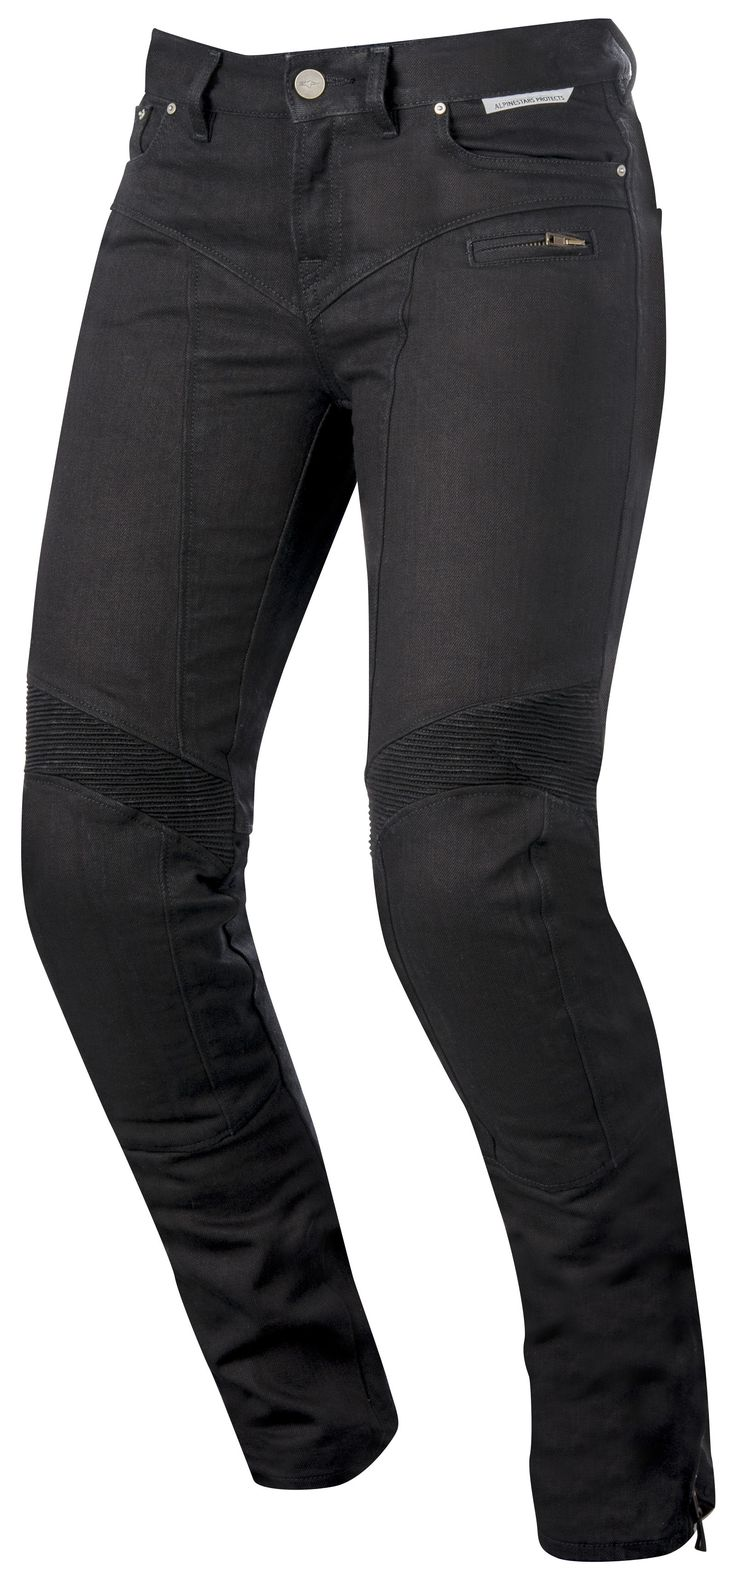 The Alpinestars Women's Riley Jeans are an artfully crafted technical riding pant for technical riders looking for race-like dynamics with urban style and fu...